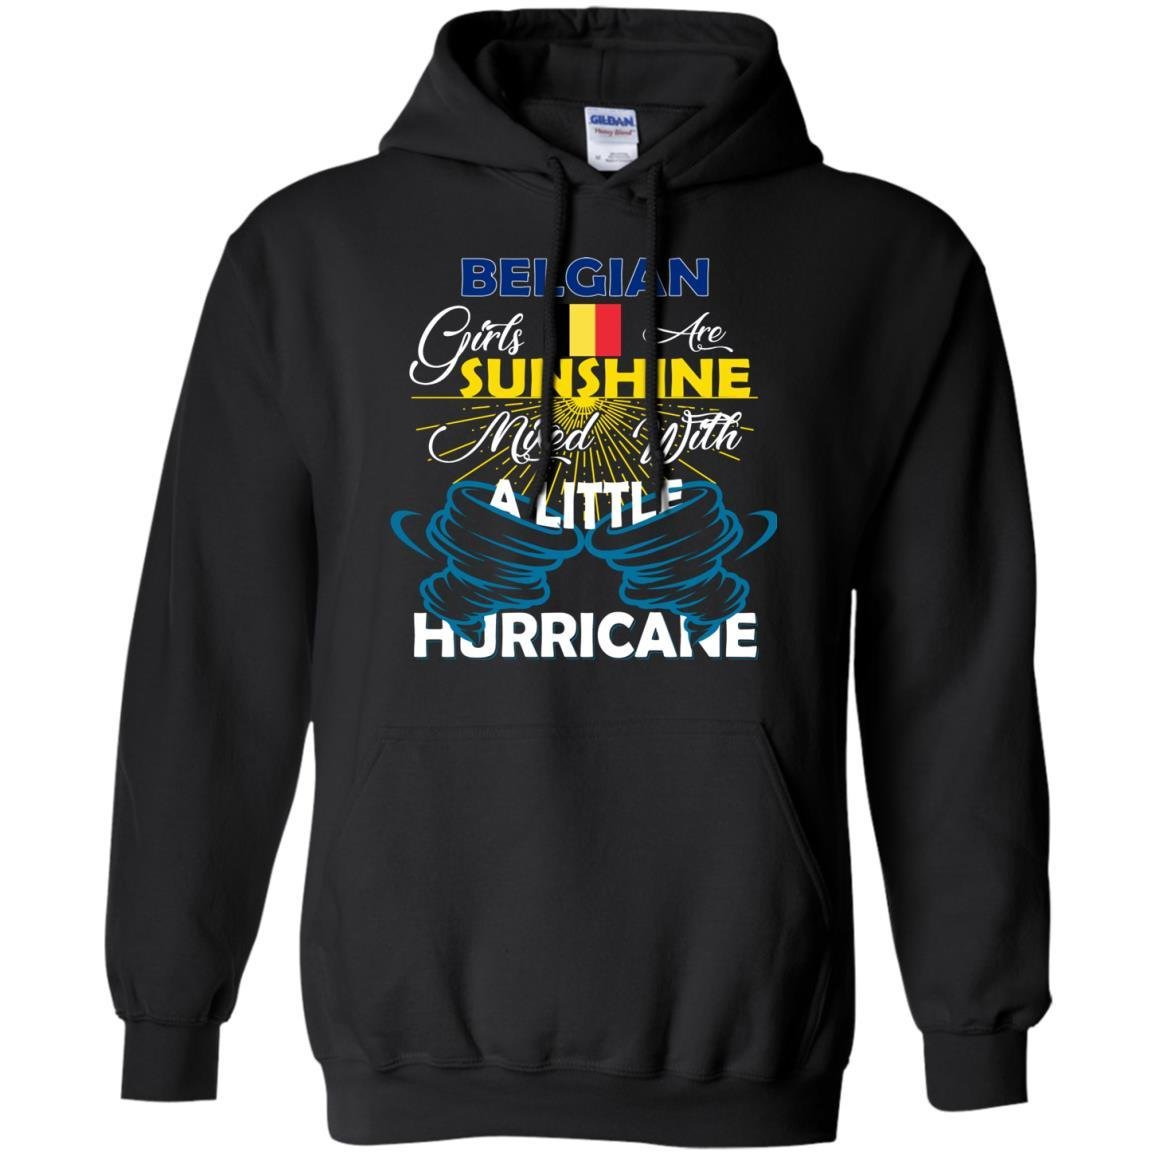 FavoryStore Belgian Girls Are Sunshine Mixed With a Little Hurricane Shirt Hoodie